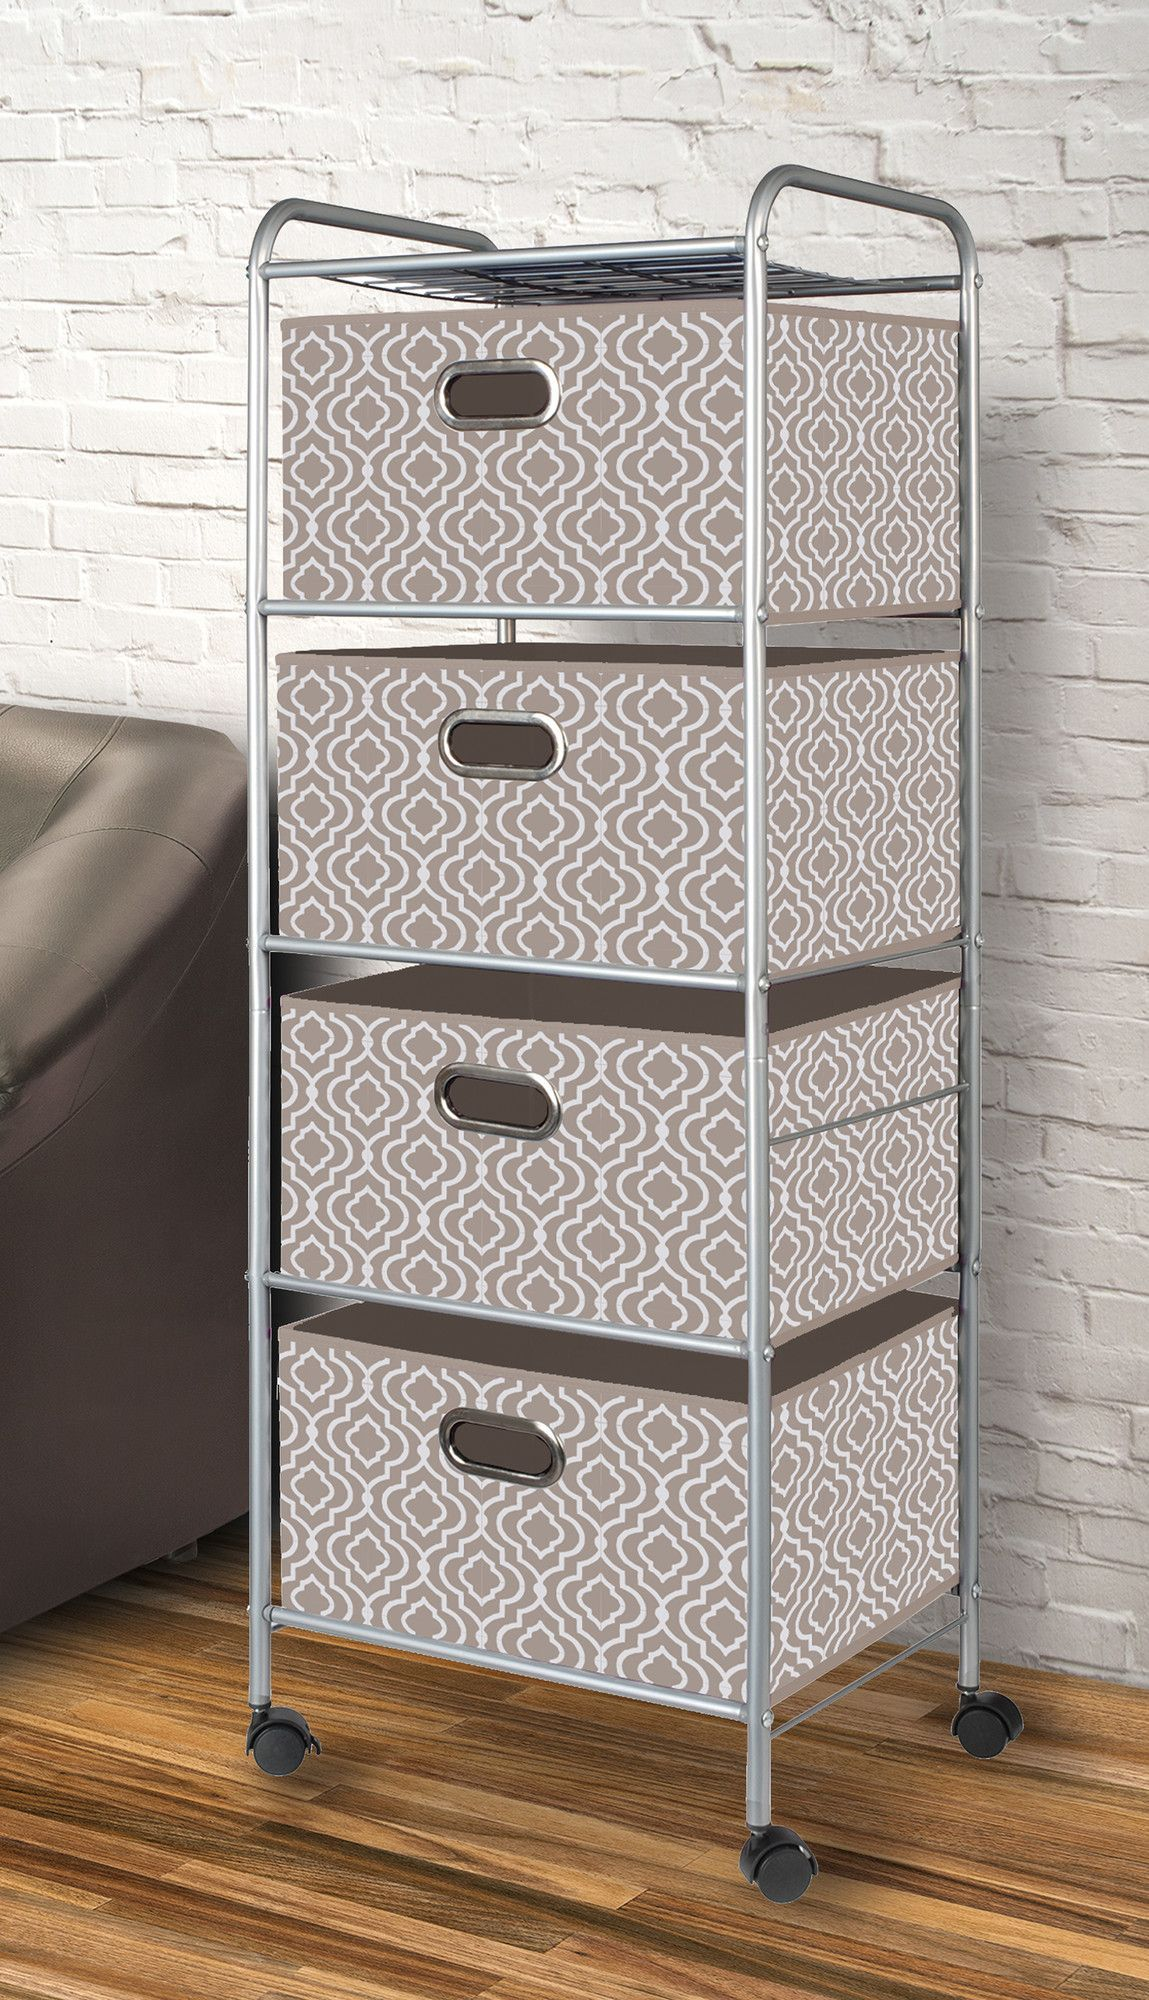 4 Drawer Fabric Cart